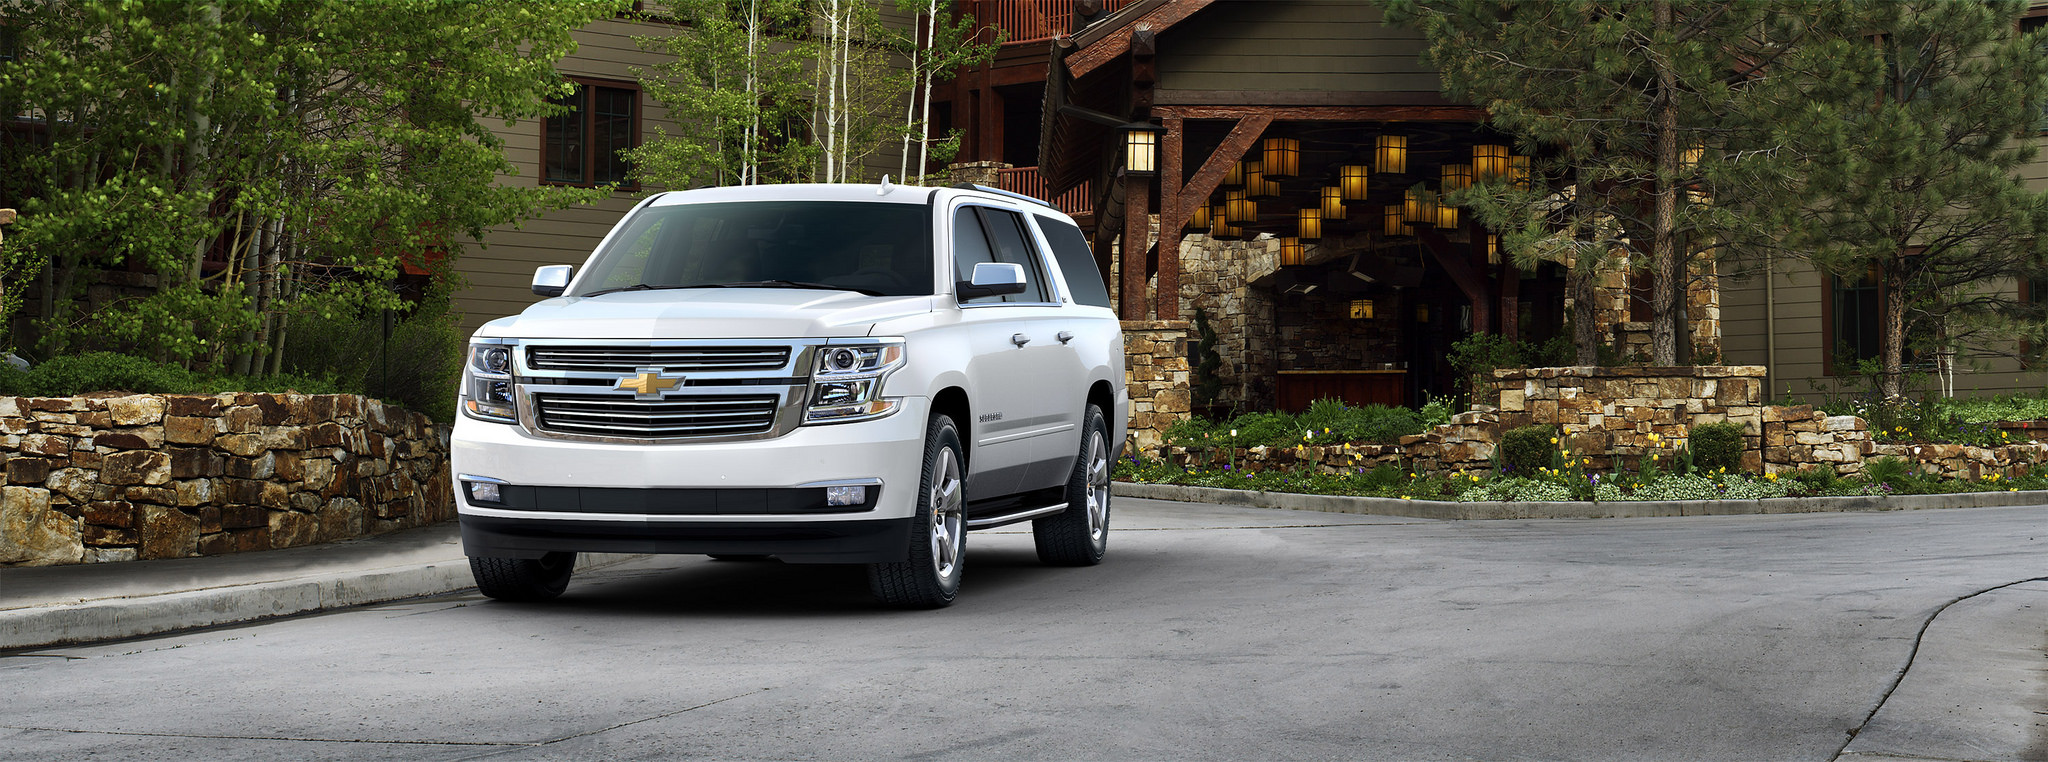 2016 Chevrolet Suburban at Carter Chevrolet in Okarche OK